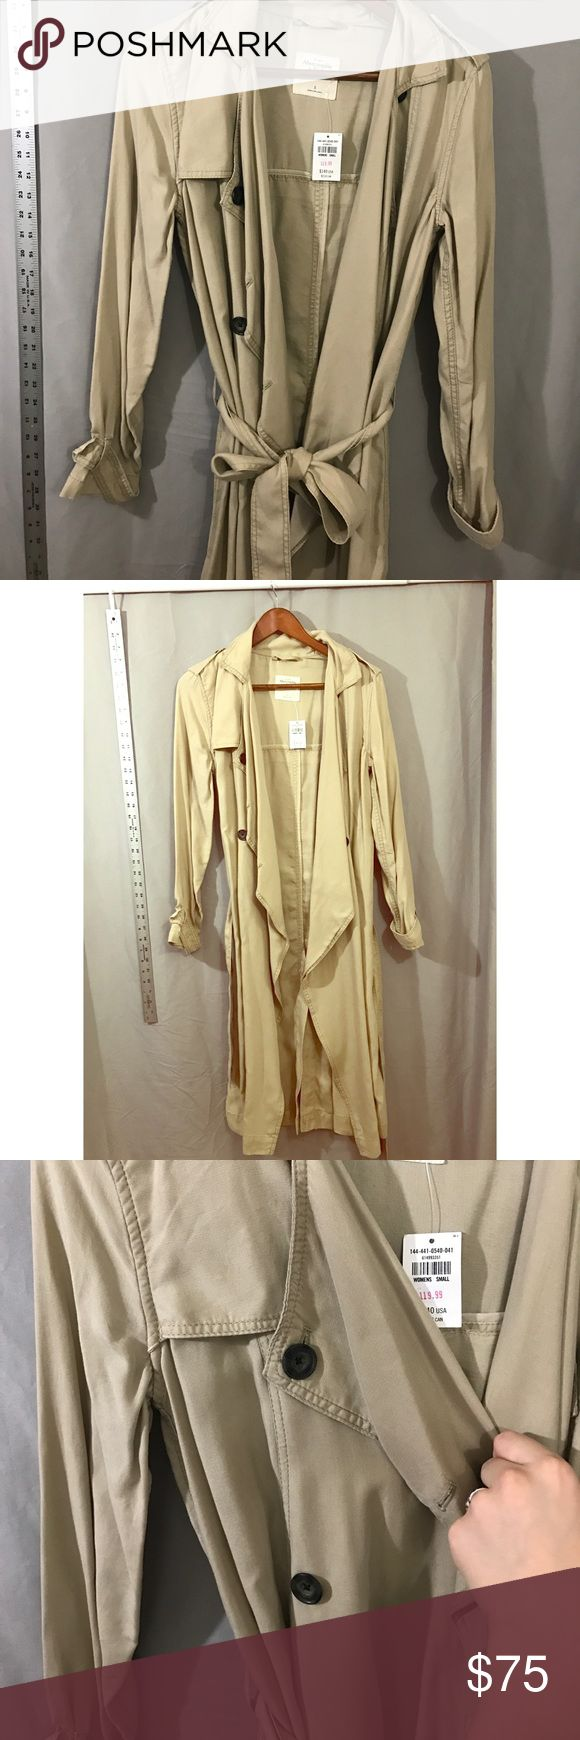 Abercrombie and Fitch Long Jacket NWT A&F khaki colored long jacket!super soft. Size small. NWT!! Would be super cute with a dress. 45 inches long. Has pockets! 100% lyocell. Smoke free home. Make an offer! Abercrombie & Fitch Jackets & Coats